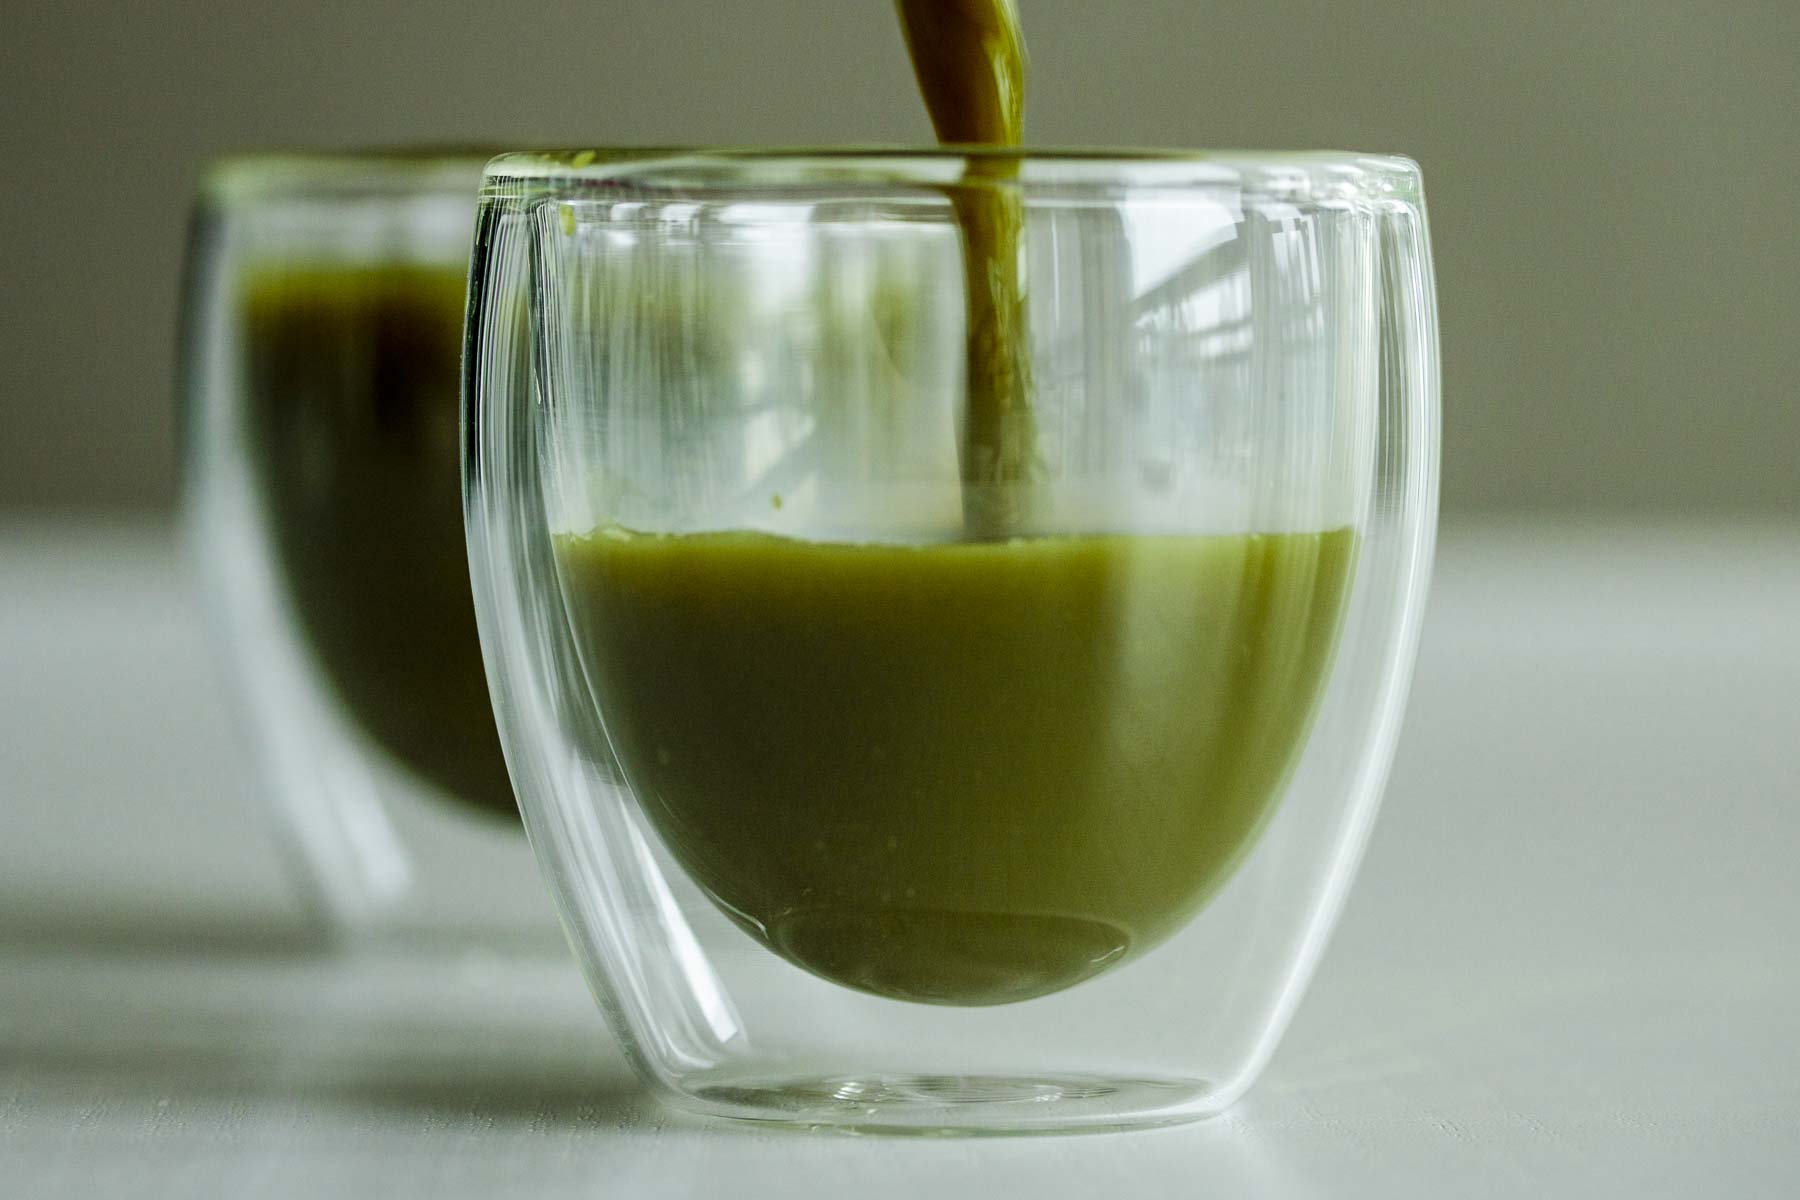 Pouring Macha tea in a transparent glass.